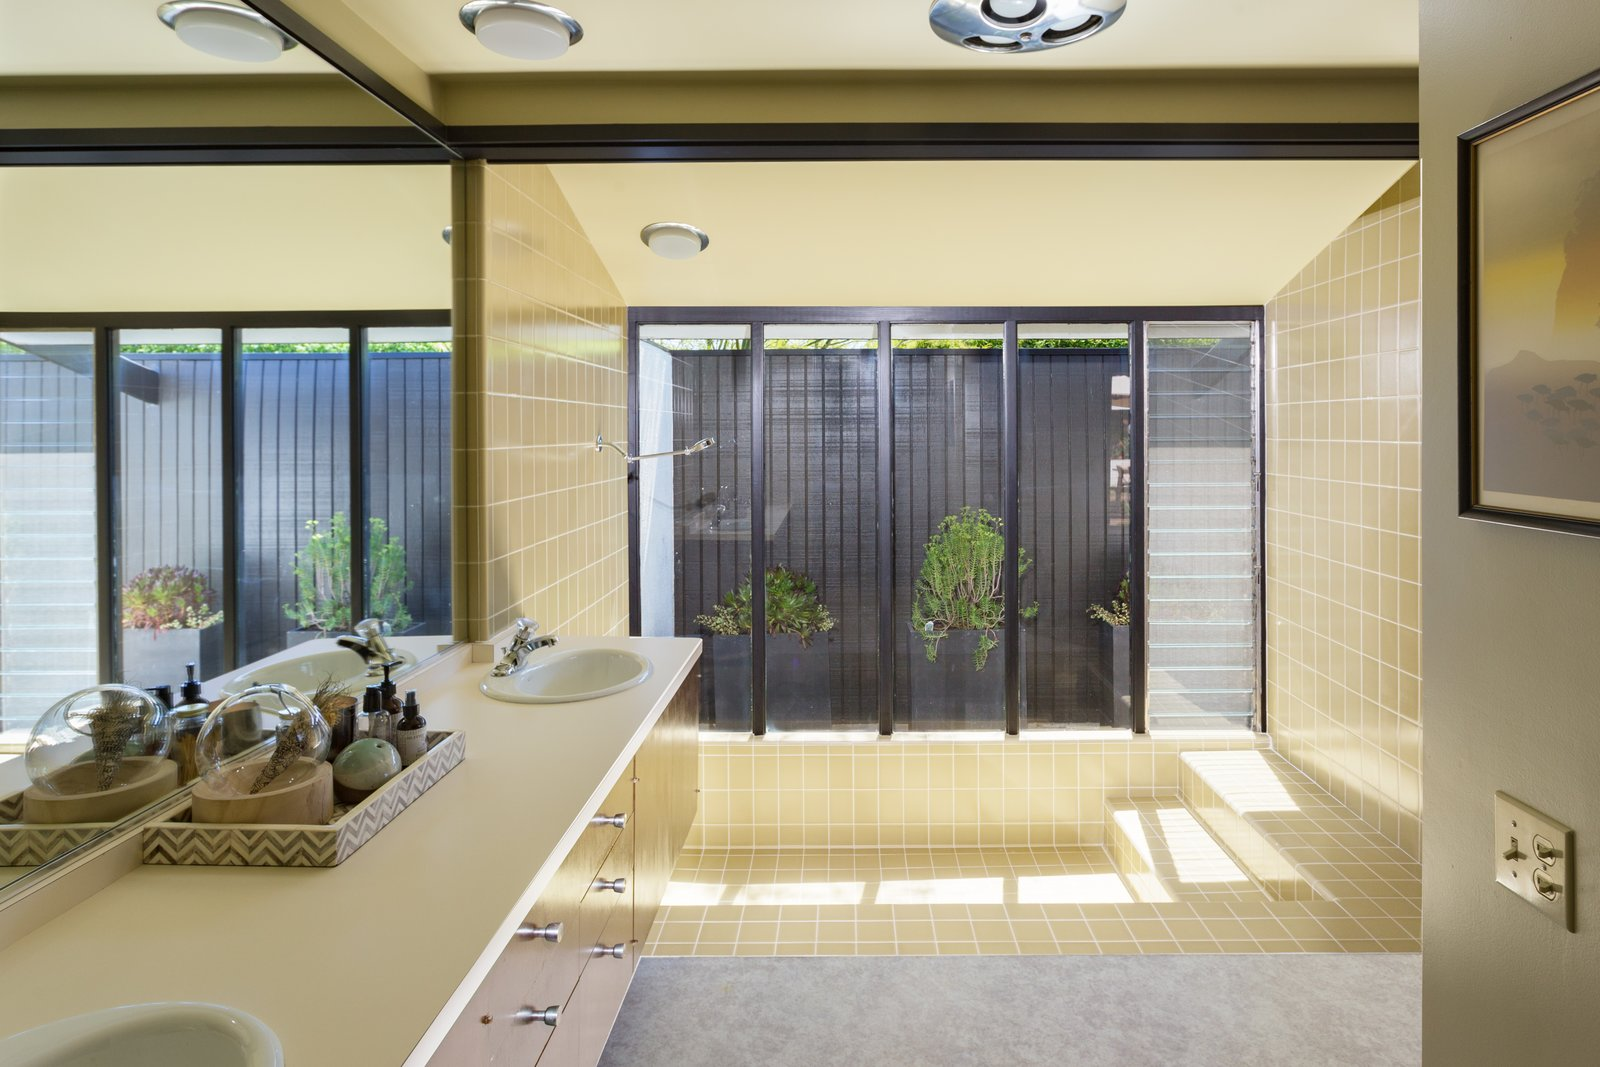 Tagged: Bath Room and Open Shower.  Photo 9 of 14 in Offered at $899K, a Restored Midcentury Abode Shines in Southern California